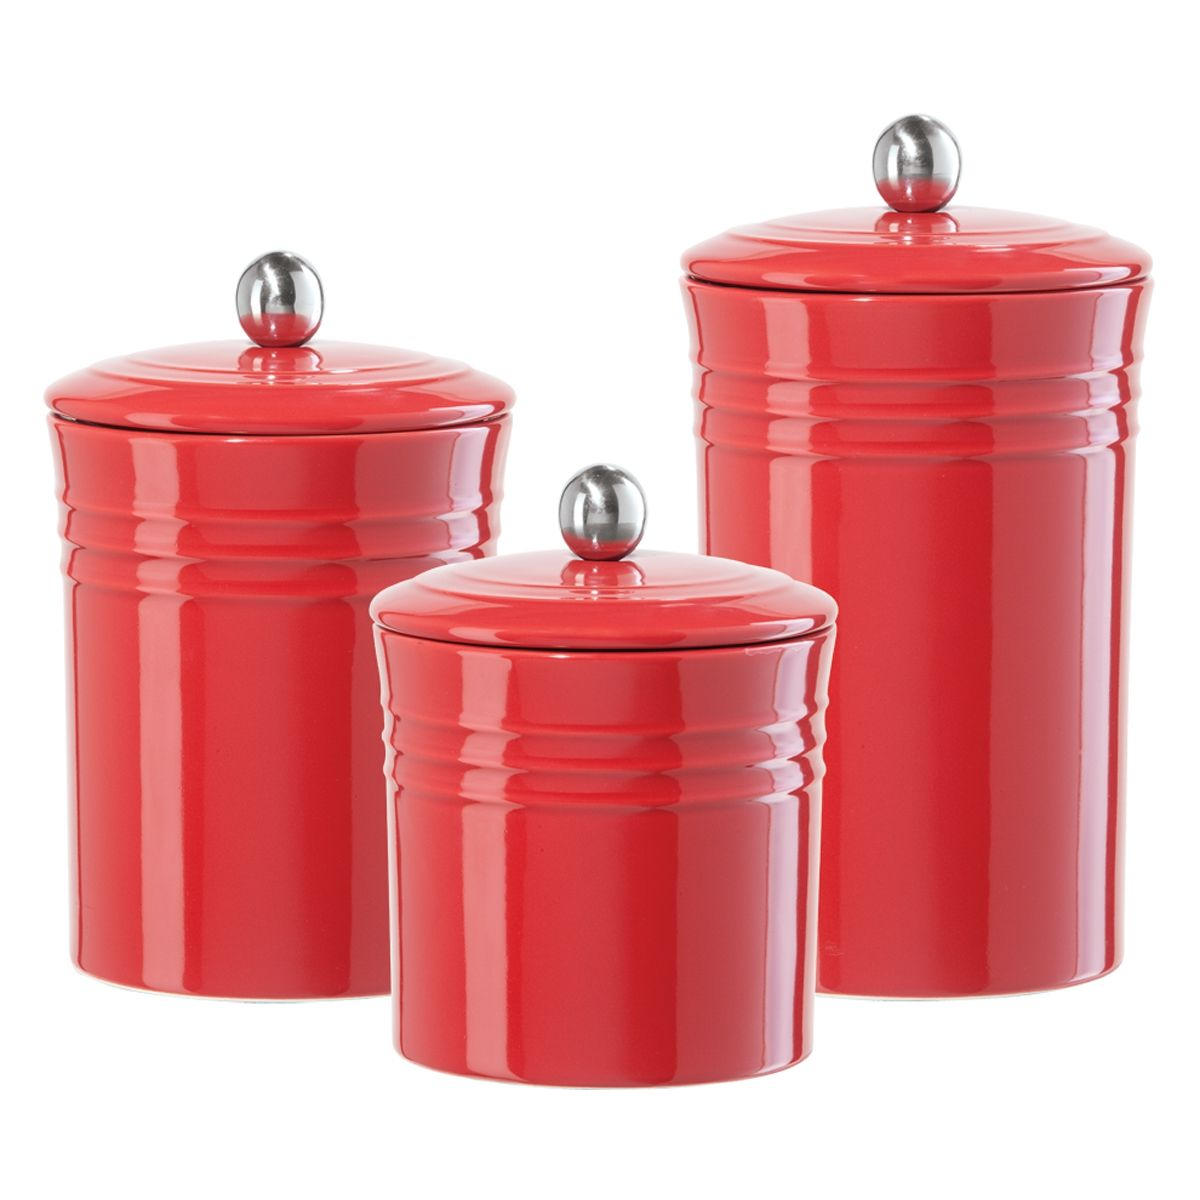 canister sets | The ribbed ceramic canister collection is a available in three sizes ...